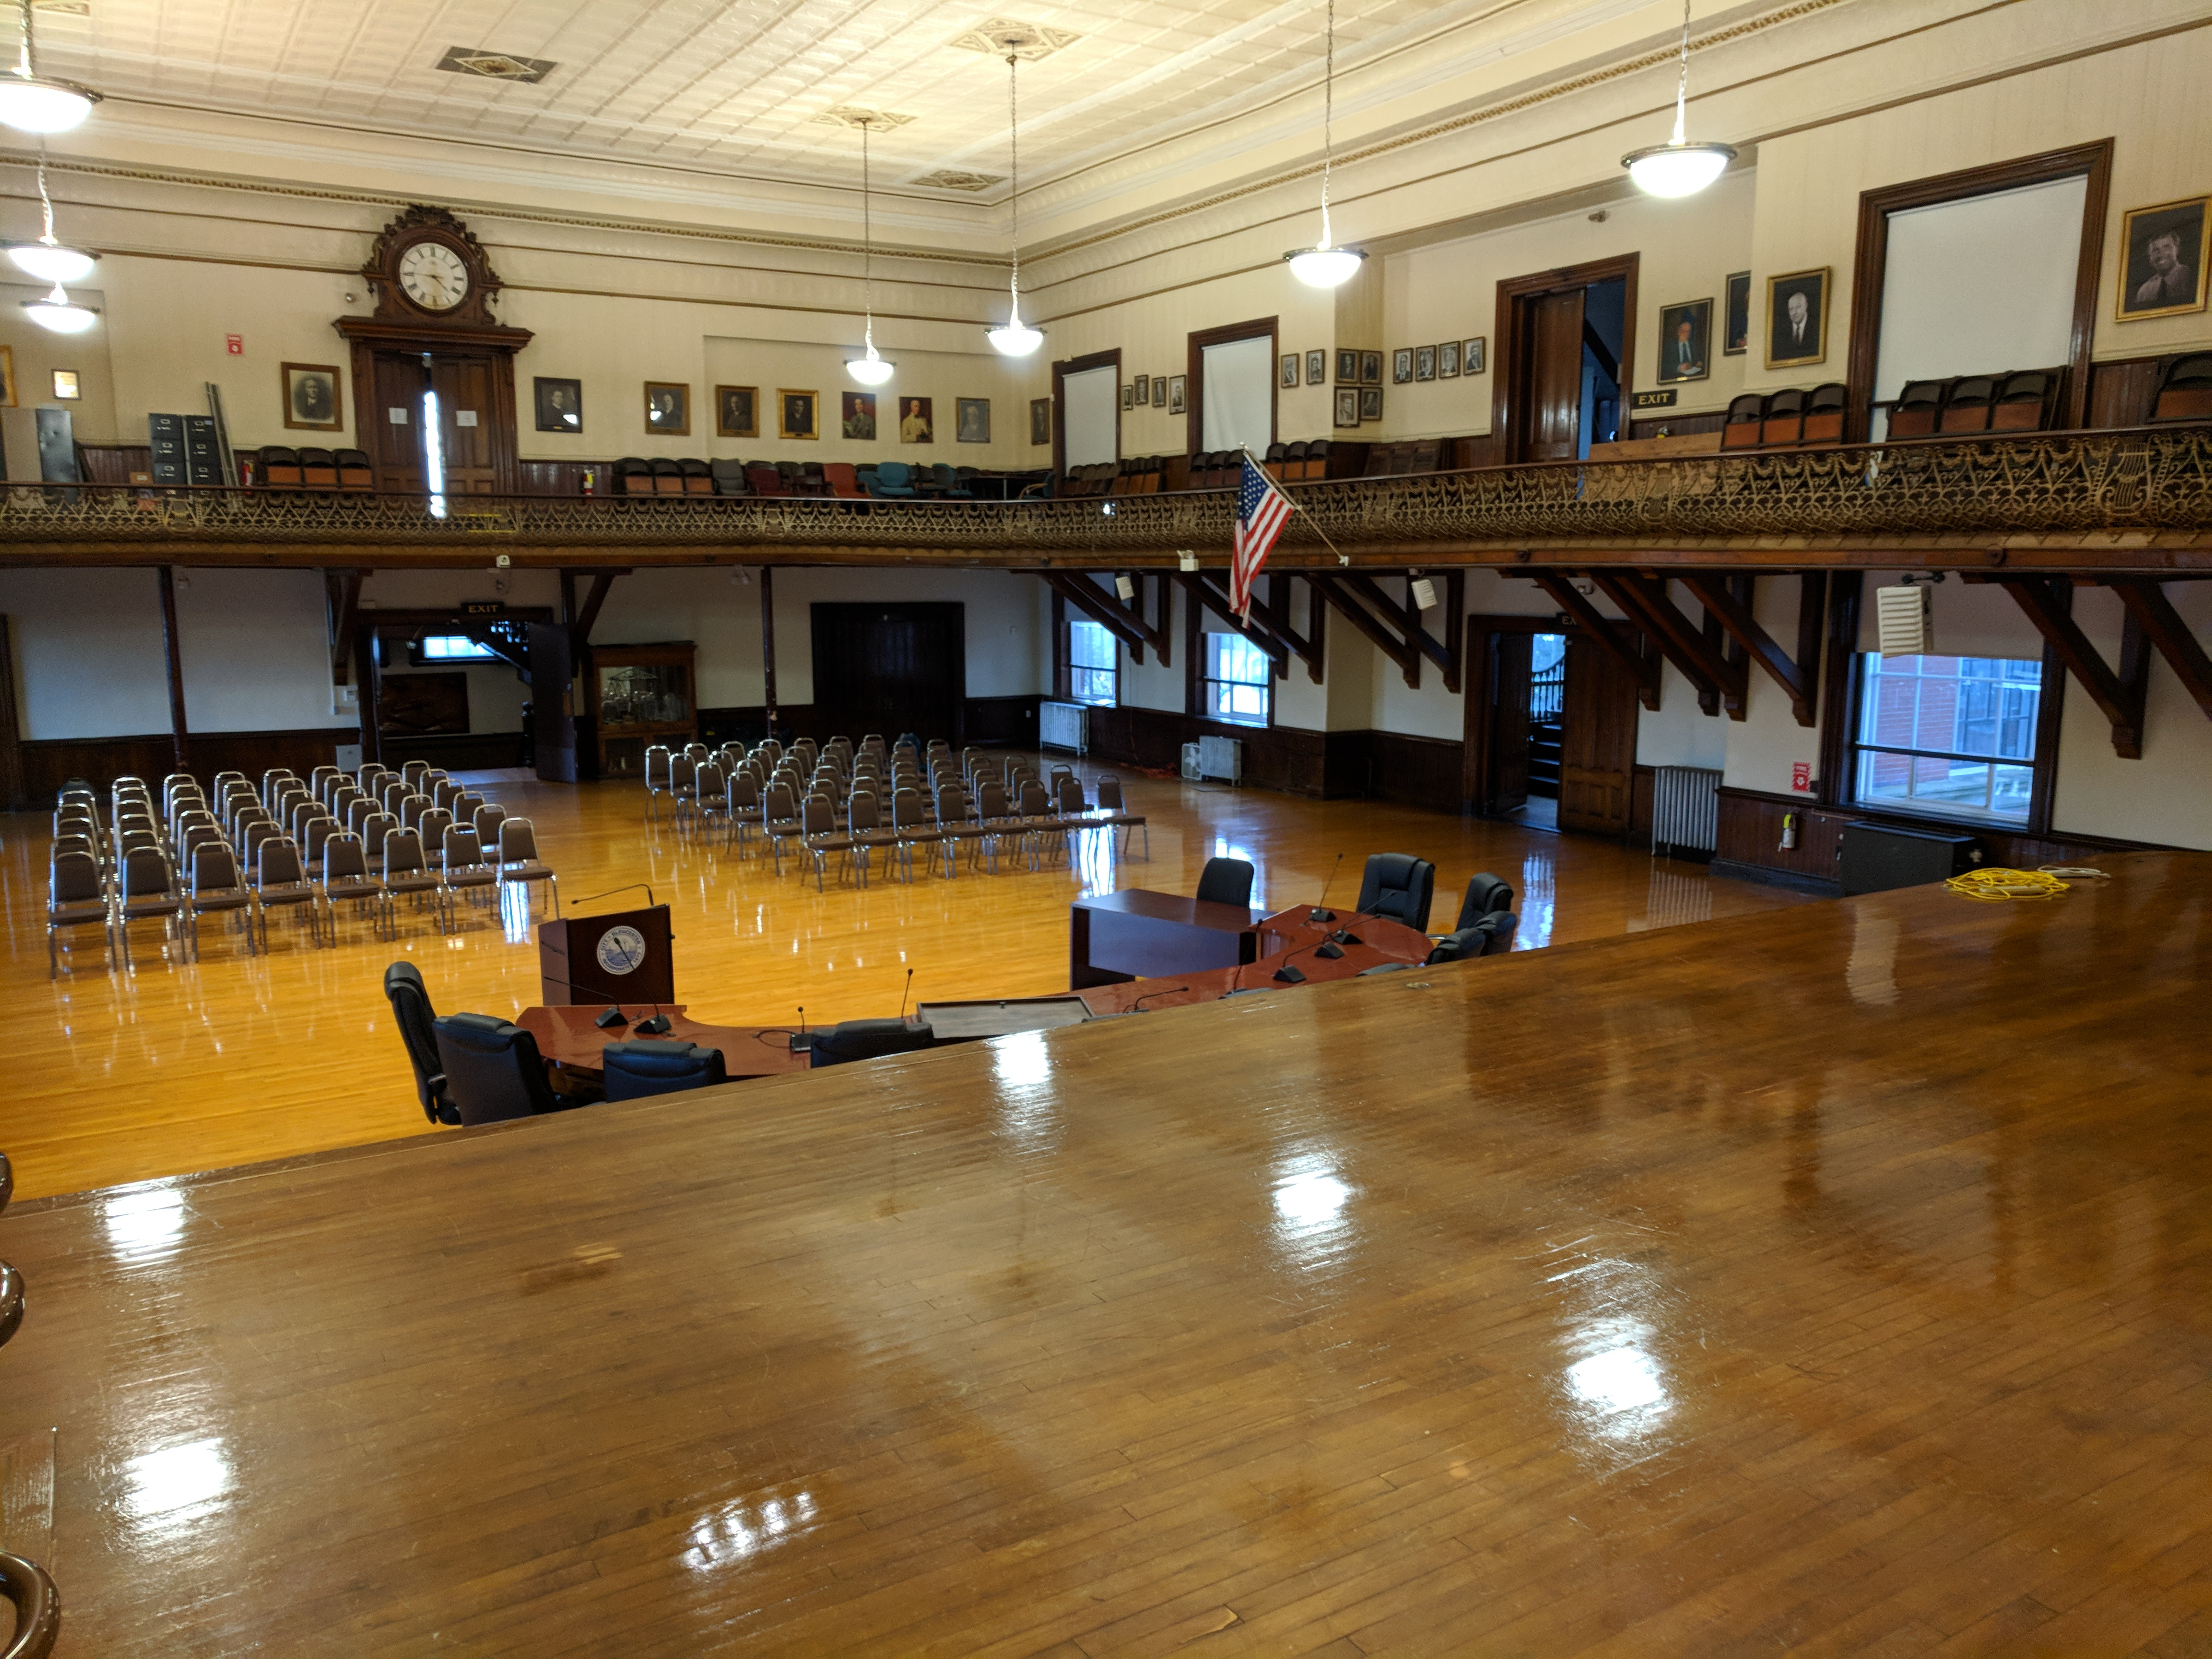 AFTER_looking out from stage after floor care Kyrouz Auditorium_City hall_Gloucester Mass ©c ryan20181017_164535.jpg